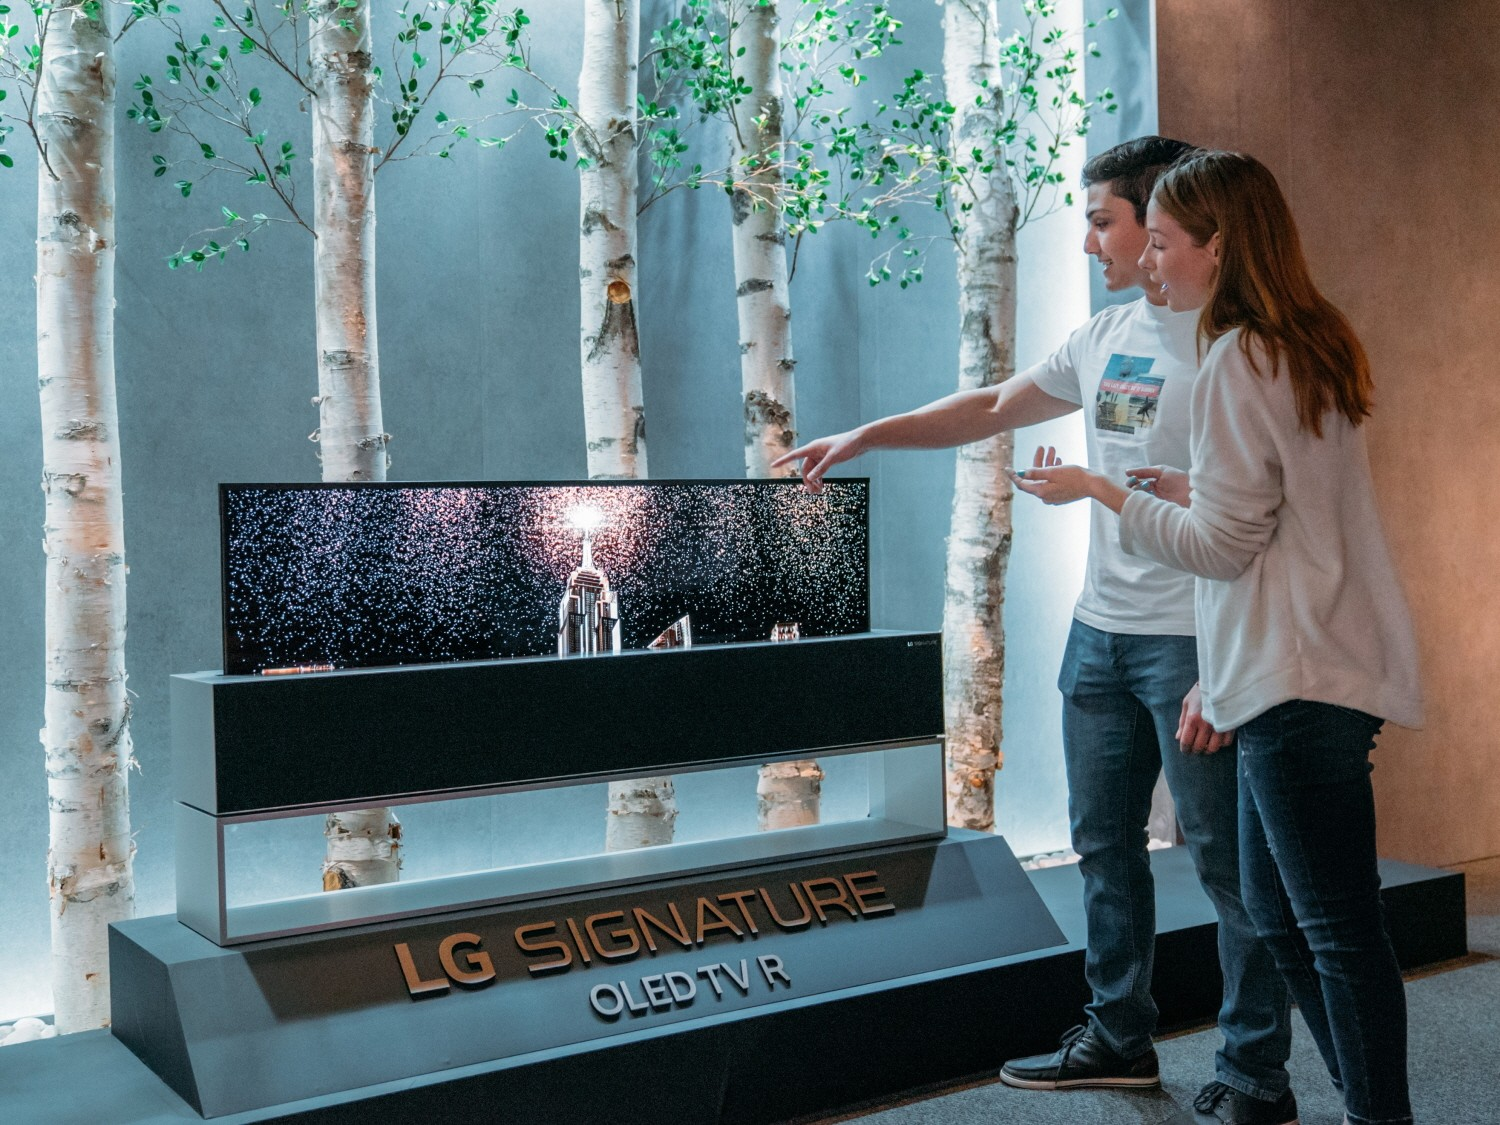 Models pose with LG SIGNATURE OLED TV R.